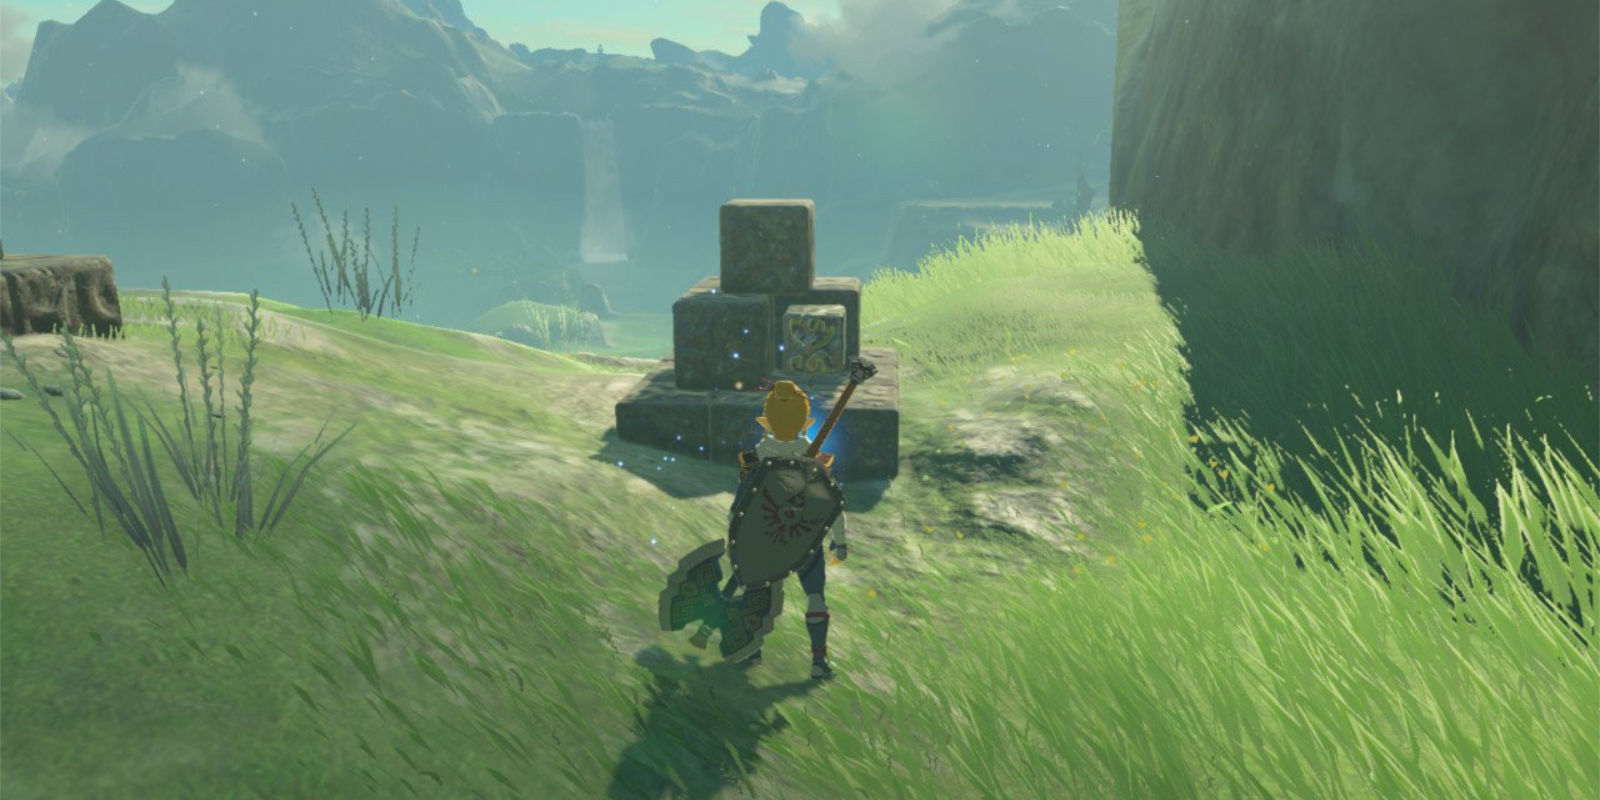 Link, carrying a large battle axe, solves a stacking-block puzzle by placing an iron cube in the correct position between other stone cubes.